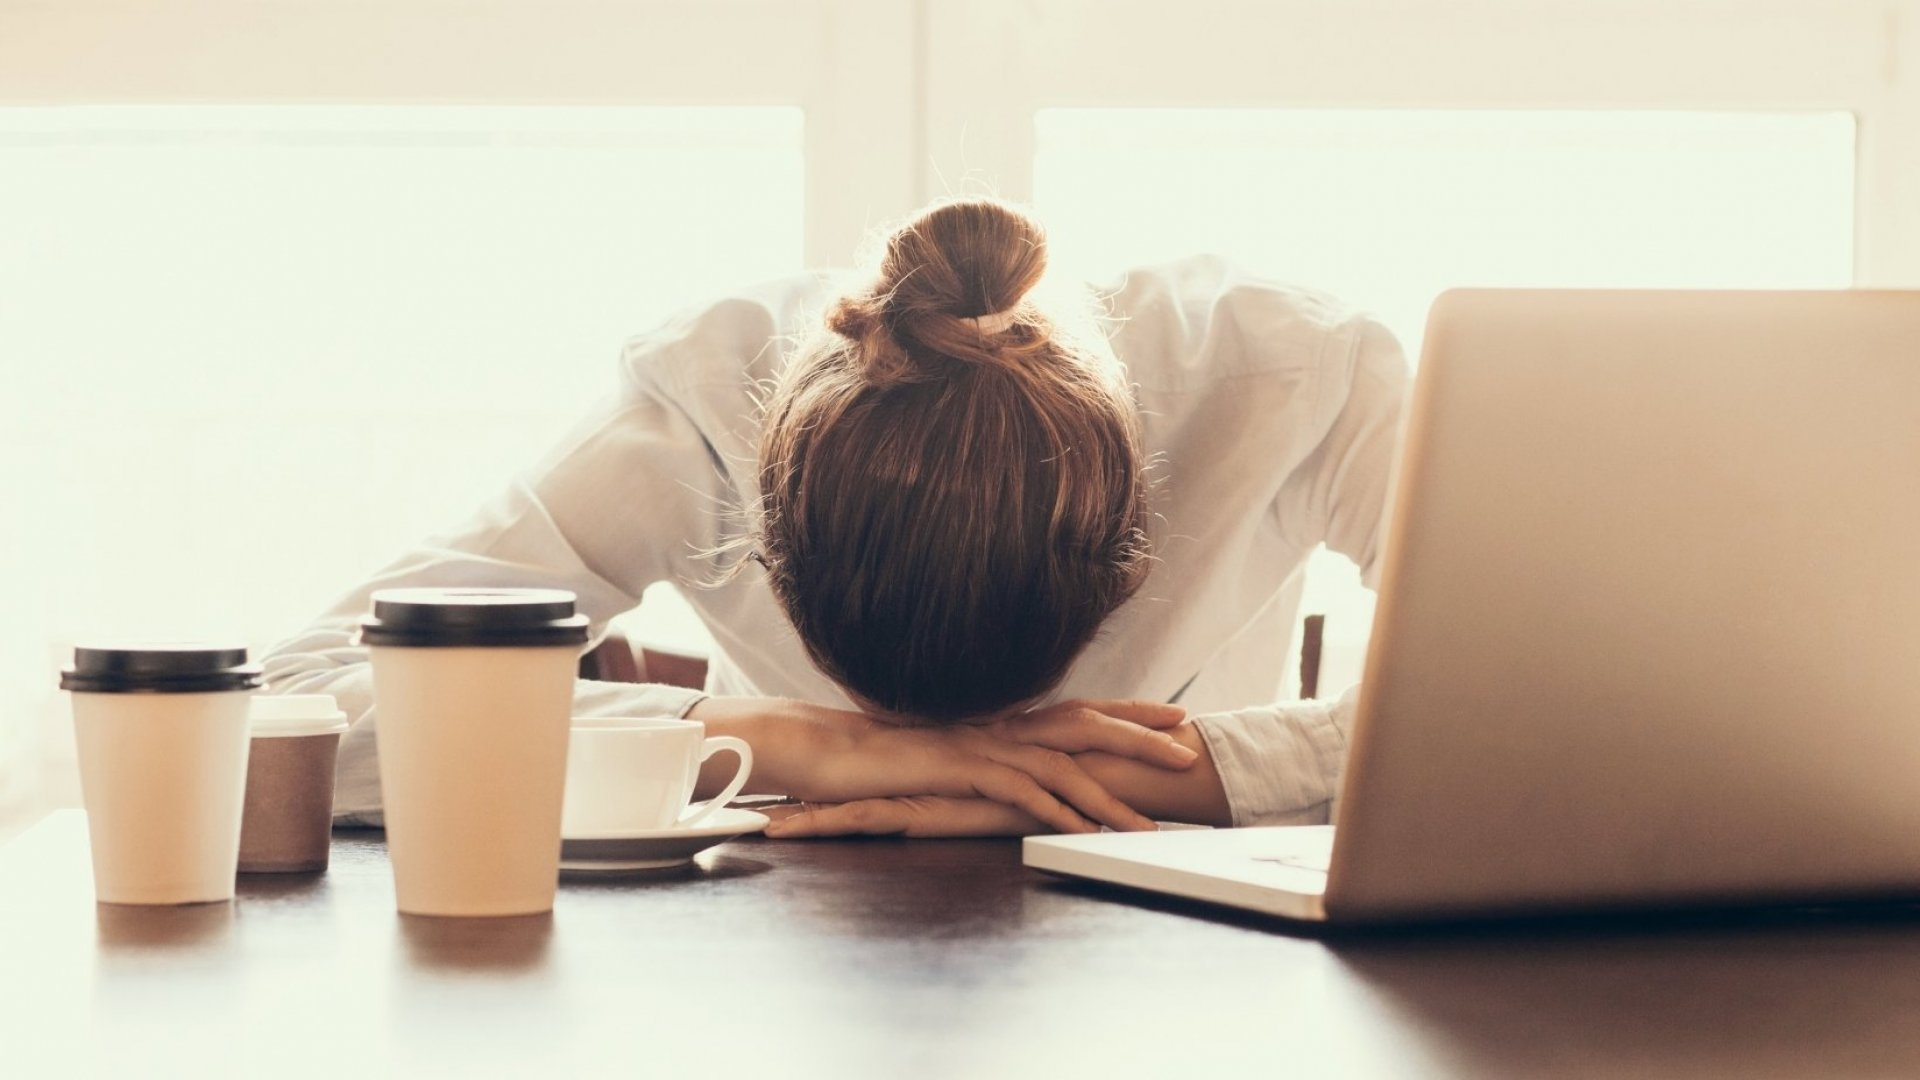 Having Trouble Sleeping? This 1 Overlooked Workplace Habit May Be the Cause